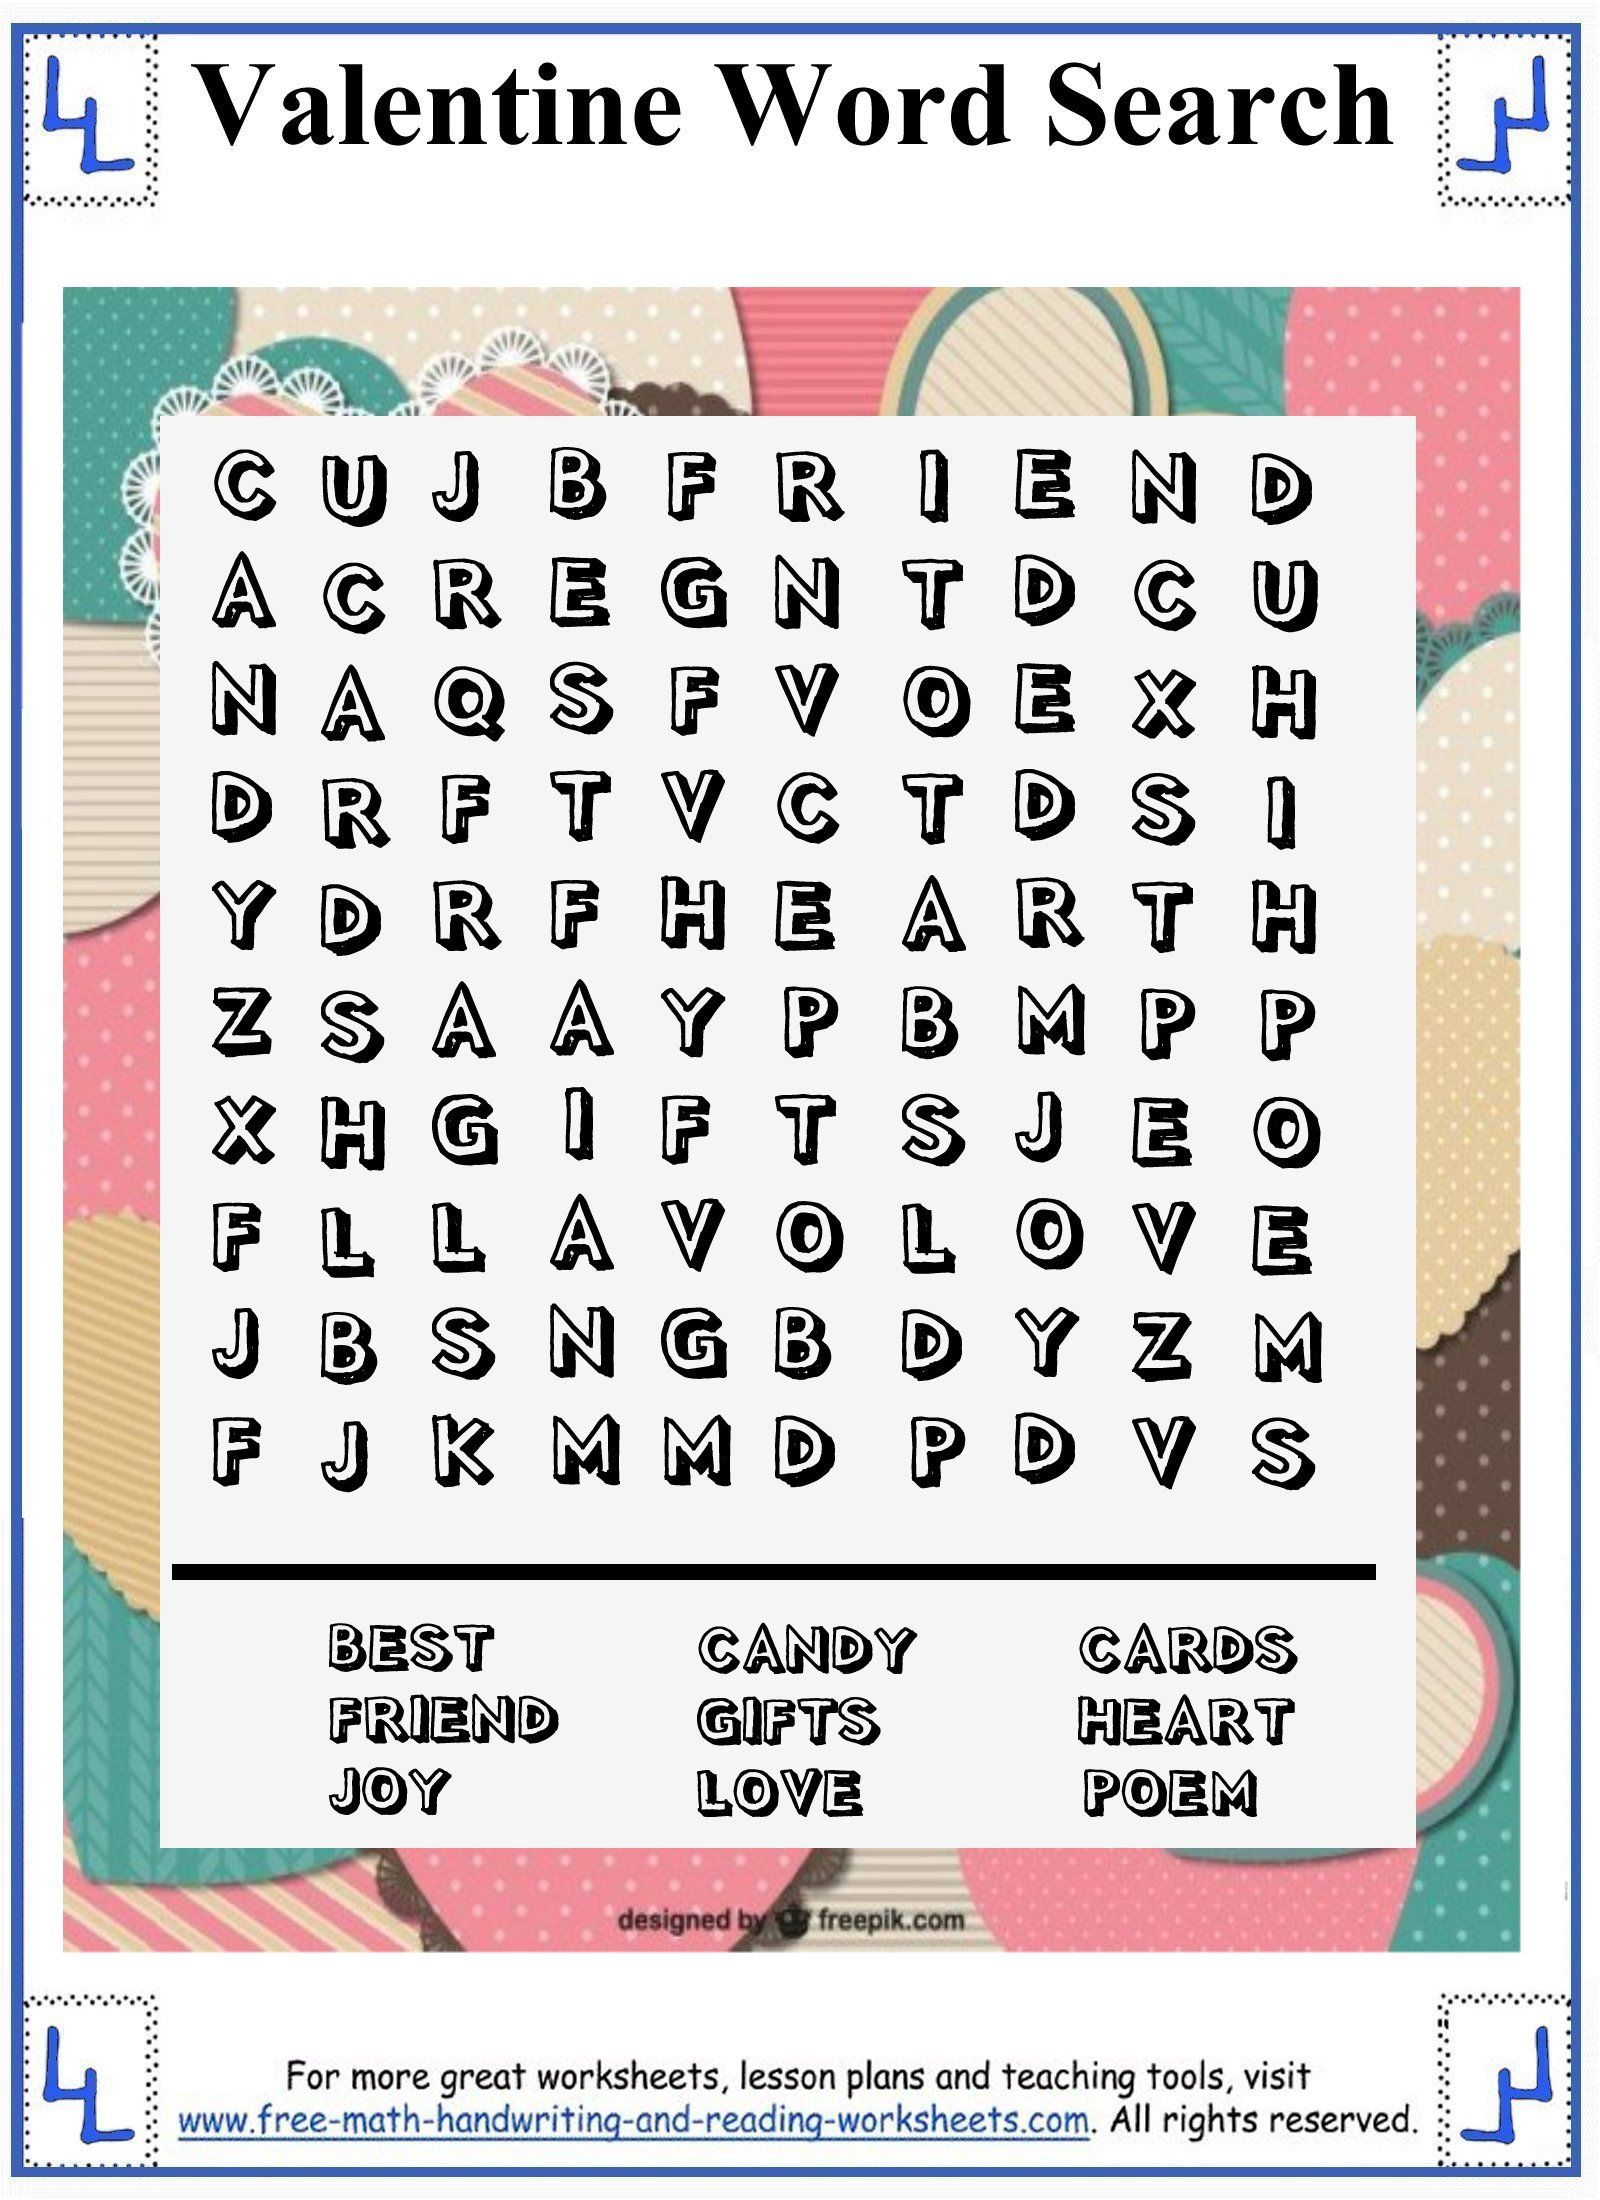 Valentine Word Search - Printable Puzzles - 10X10 Wordsearch Grid - Printable Valentine Puzzles For Adults